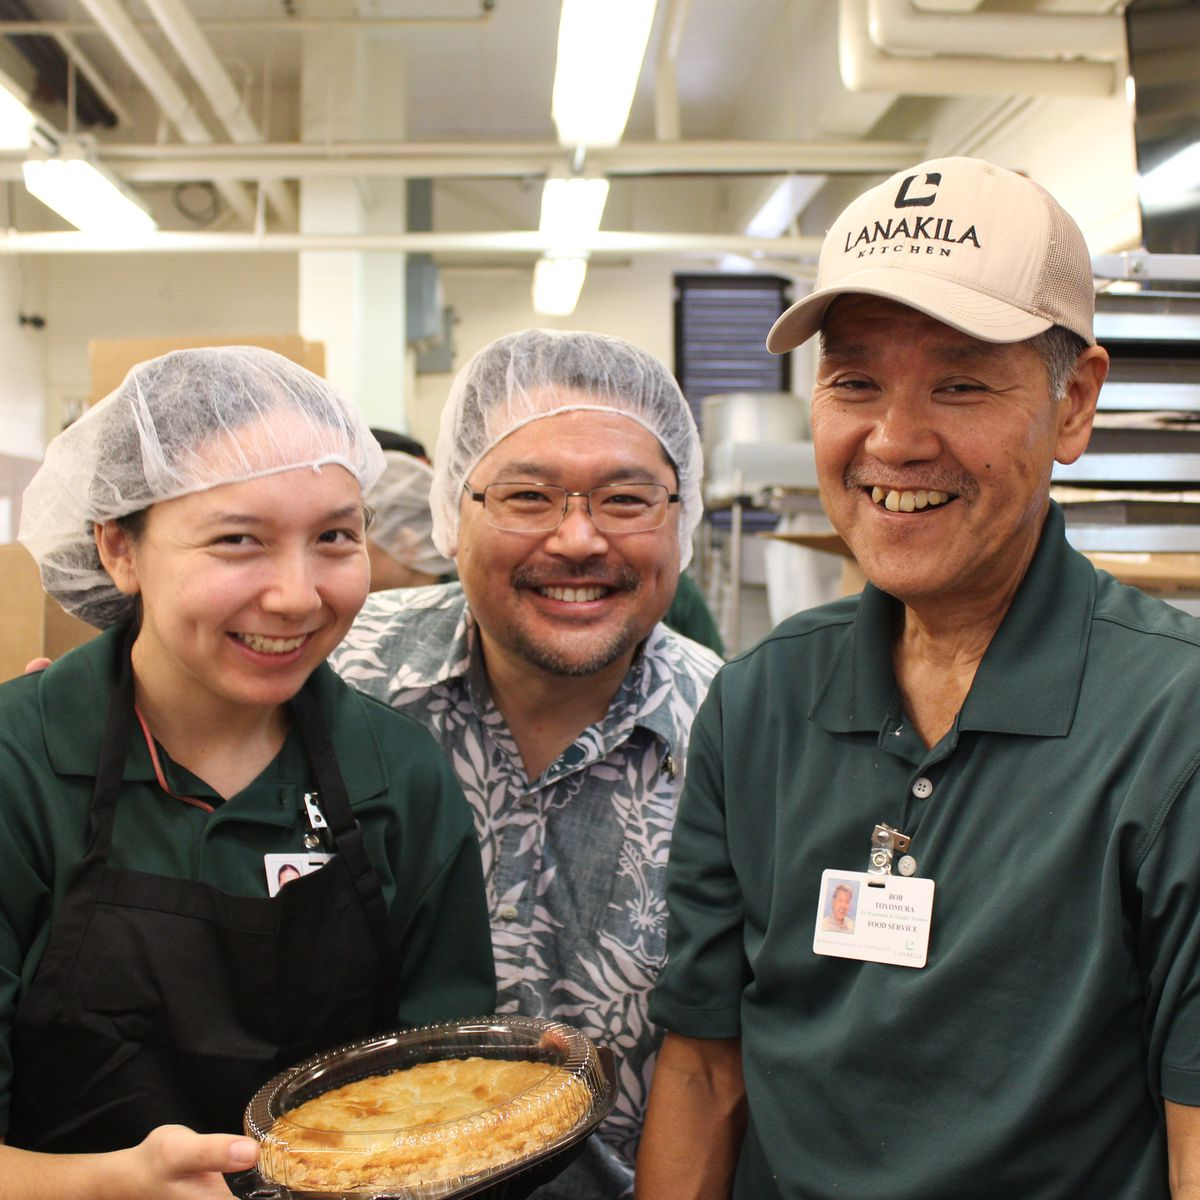 Thanksgiving dinner for a good cause? Lanakila Pacific has you covered